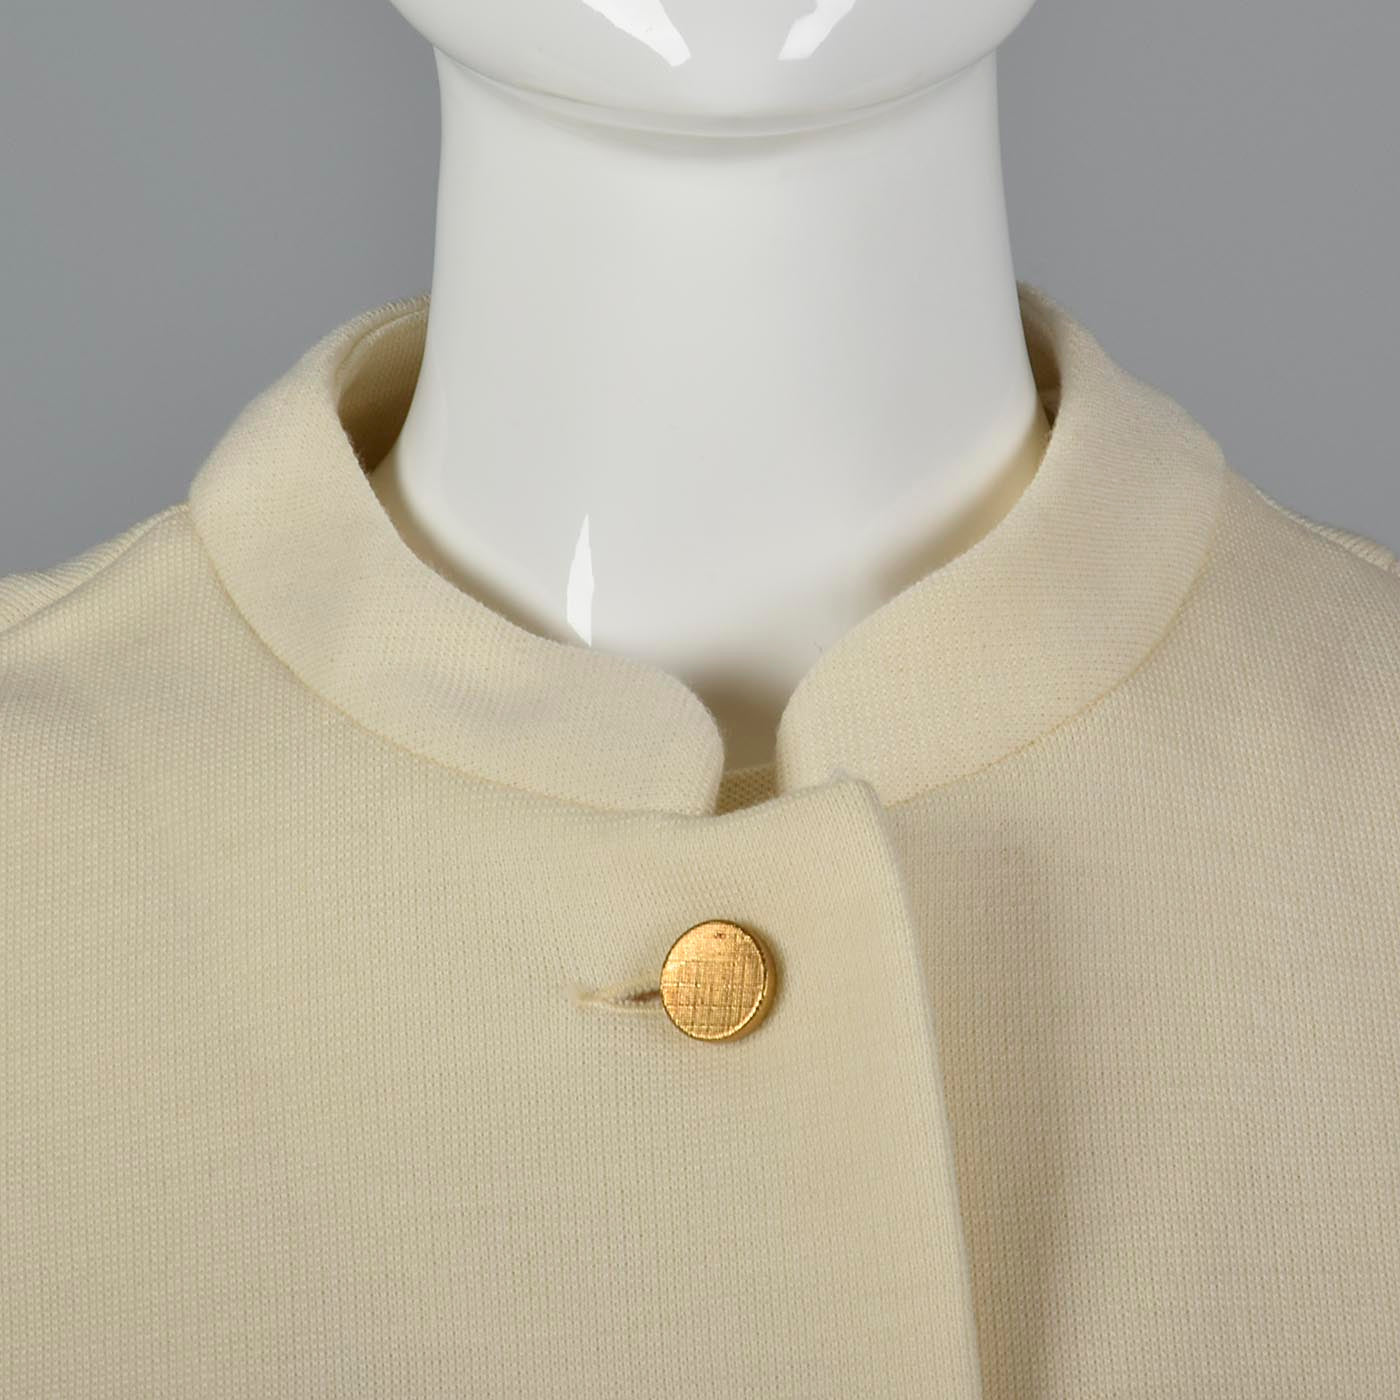 1960s Deadstock Cream Wool Knit Set with Gold Buttons